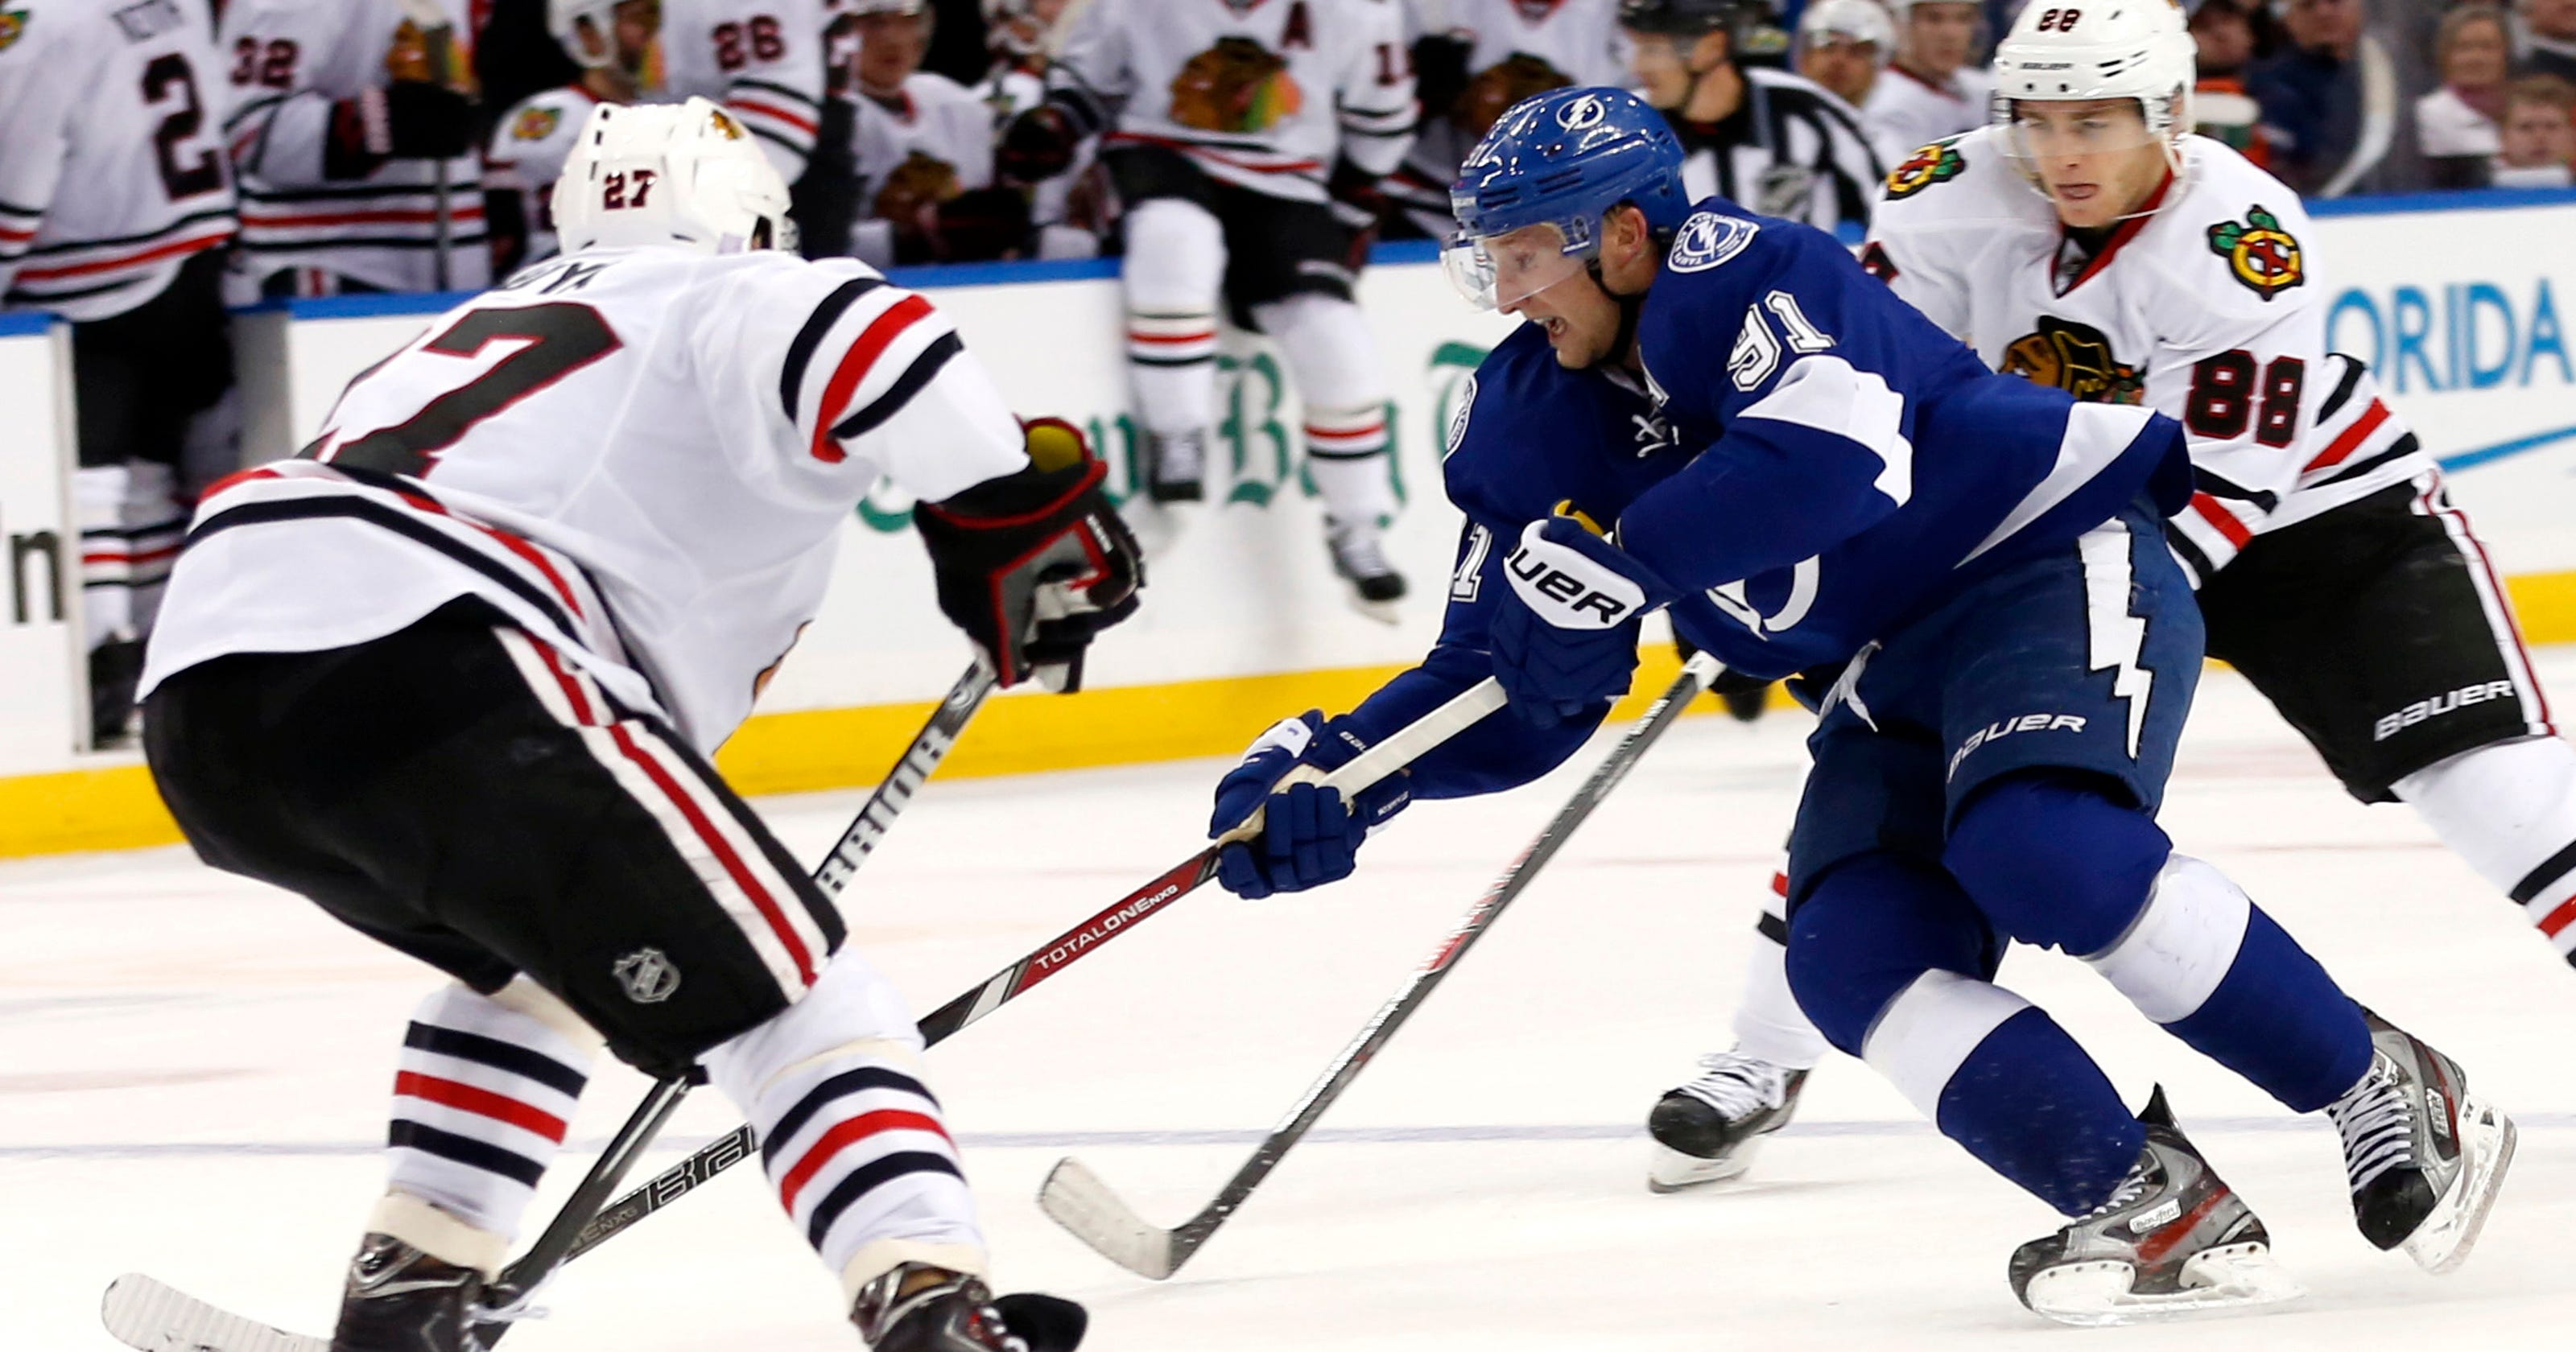 fee20cb028b Lightning outscore Blackhawks 6-5 in overtime win